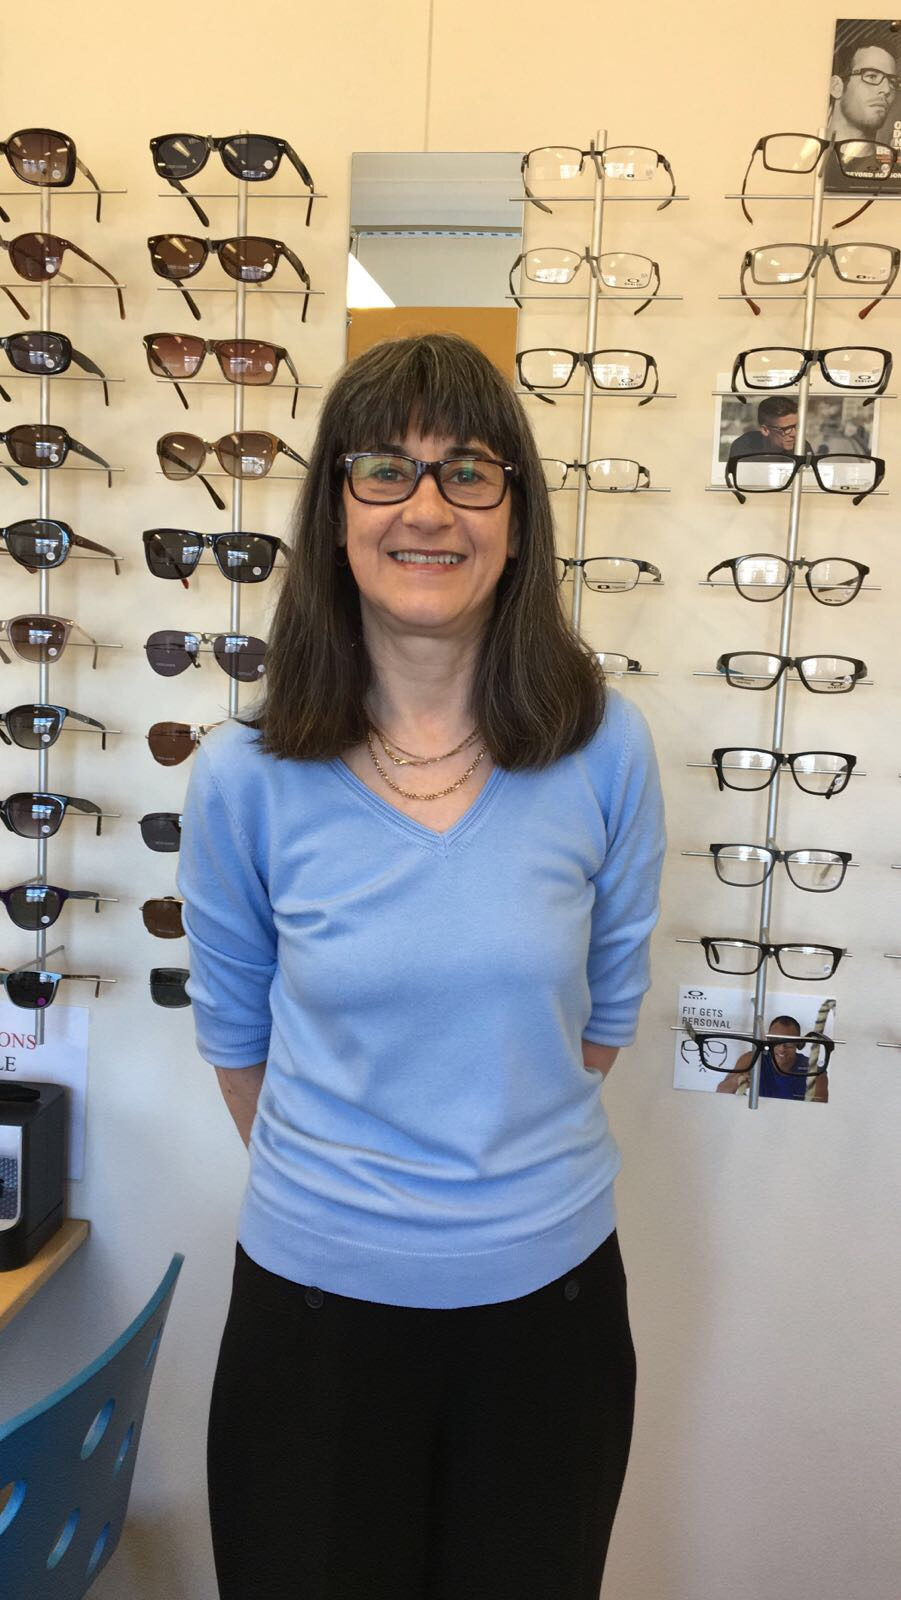 Christine   Optical Assistant   Christine is the newest member of the  SightDirect  team joining us in May 2016. Christine has worked in optics since 1989 and has a wealth of experience from working in a number of high street and independent stores around the North East.